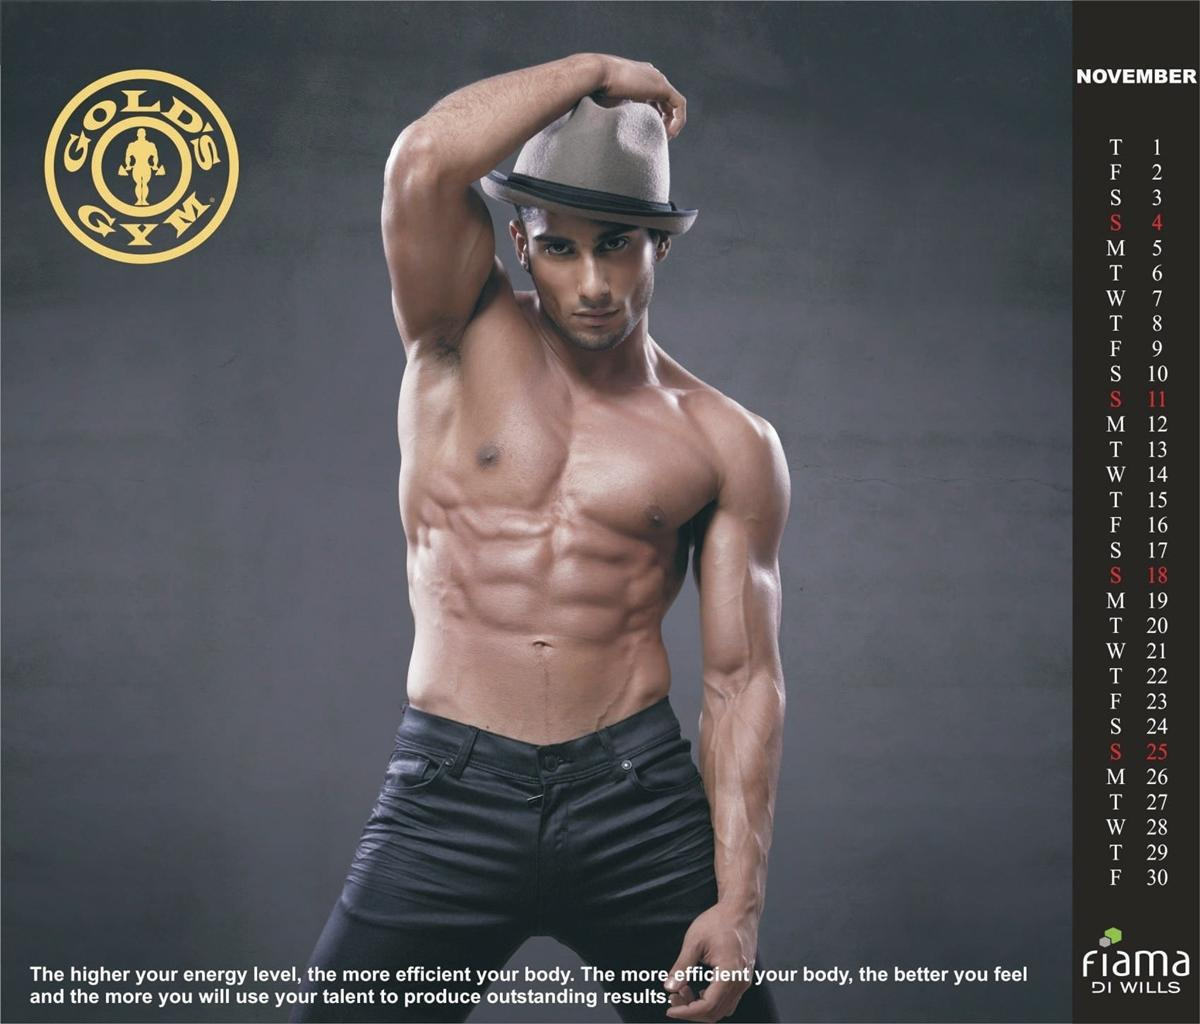 gold's gym india launch 2013 calendar | ritemail